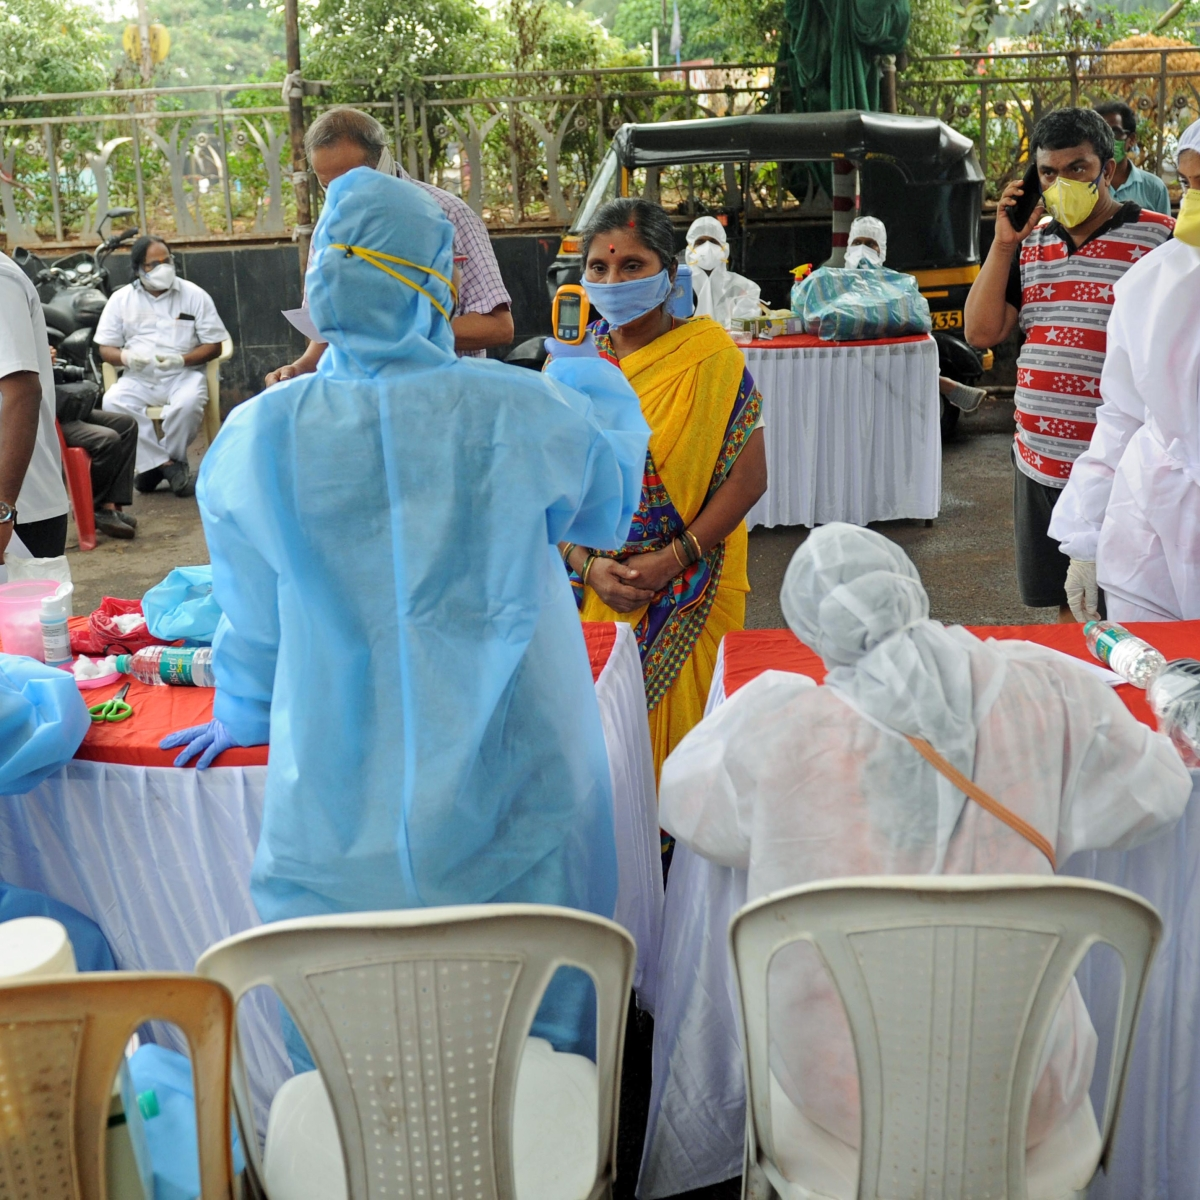 Coronavirus in Mumbai: Dharavi adds 1,400 COVID-19 cases in May